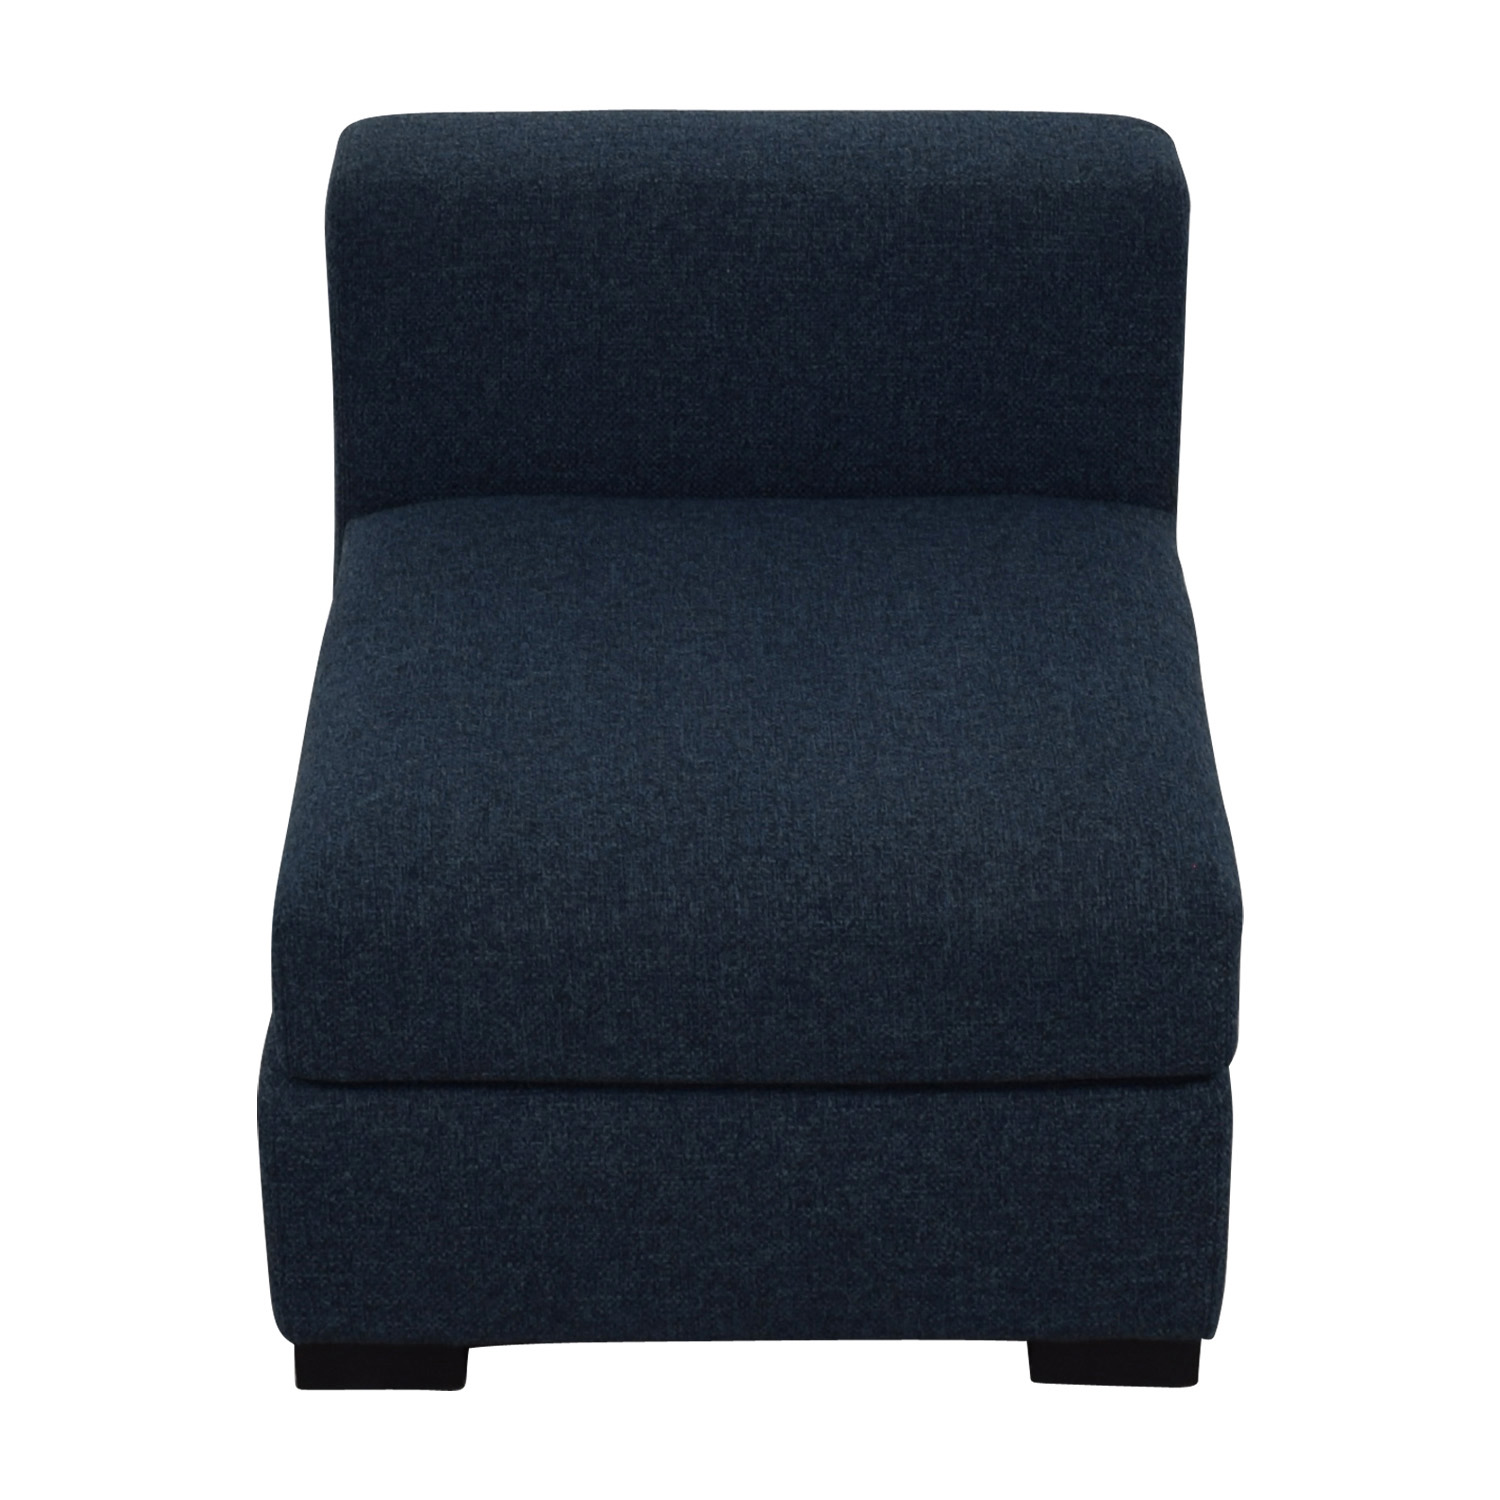 shop  Toby Blue Upholstered Armless Sofa online